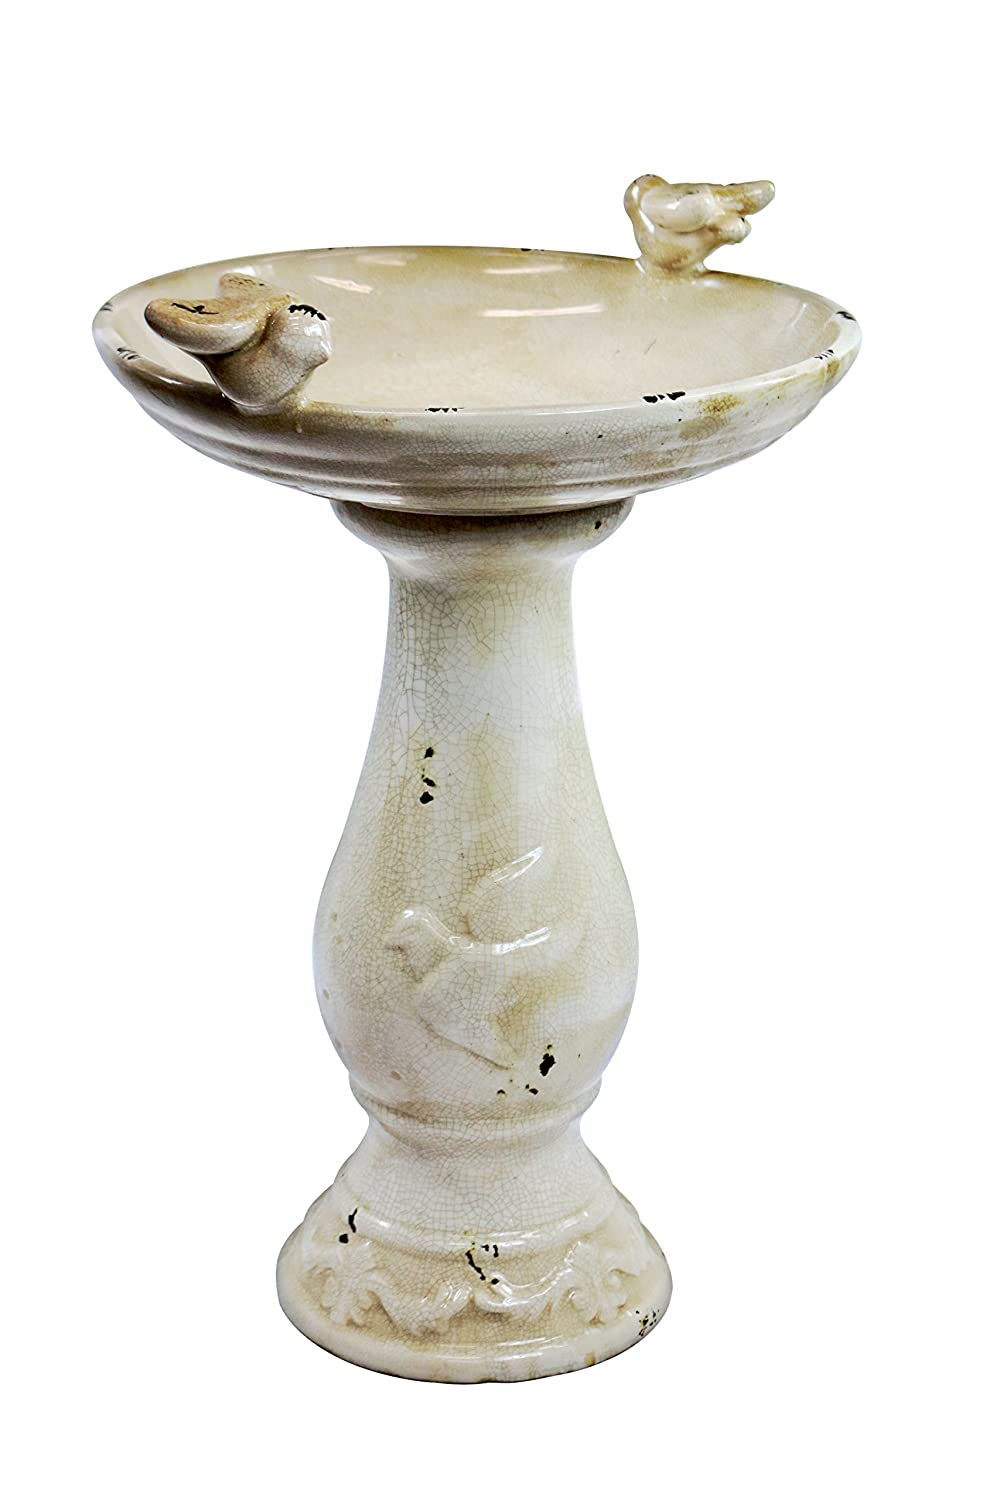 Alpine 24-Inch Antique Ceramic Birdbath with Birds-Light Brown TLR102LBR